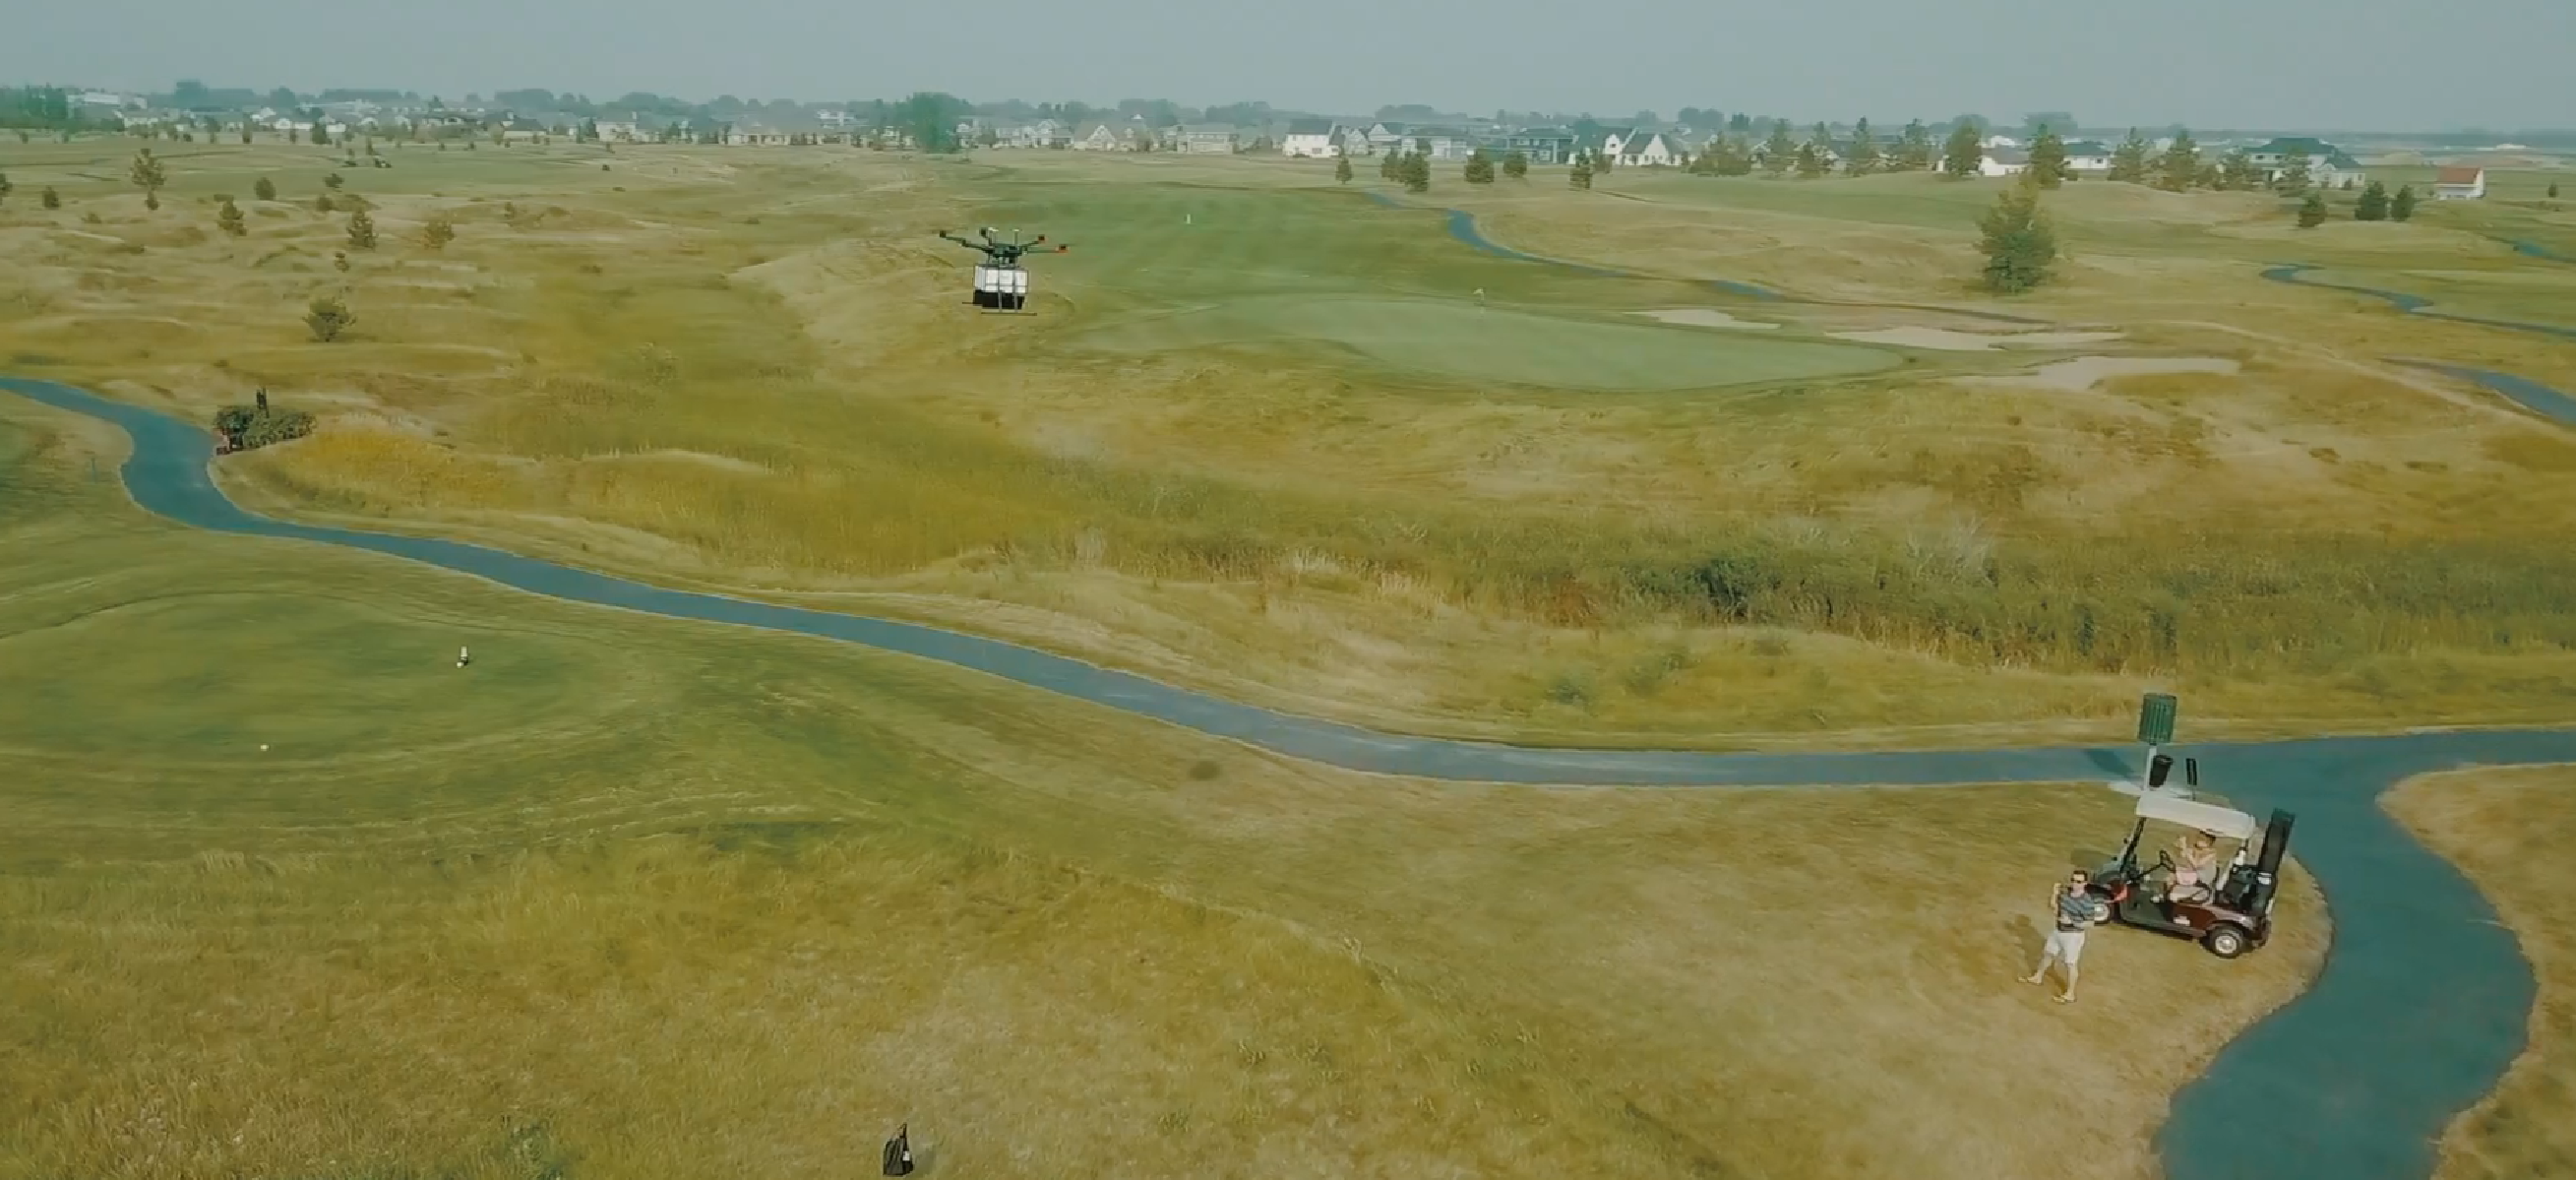 Flytrex Golf Delivers Food and Beverages to Hungry Golfers Via Drone